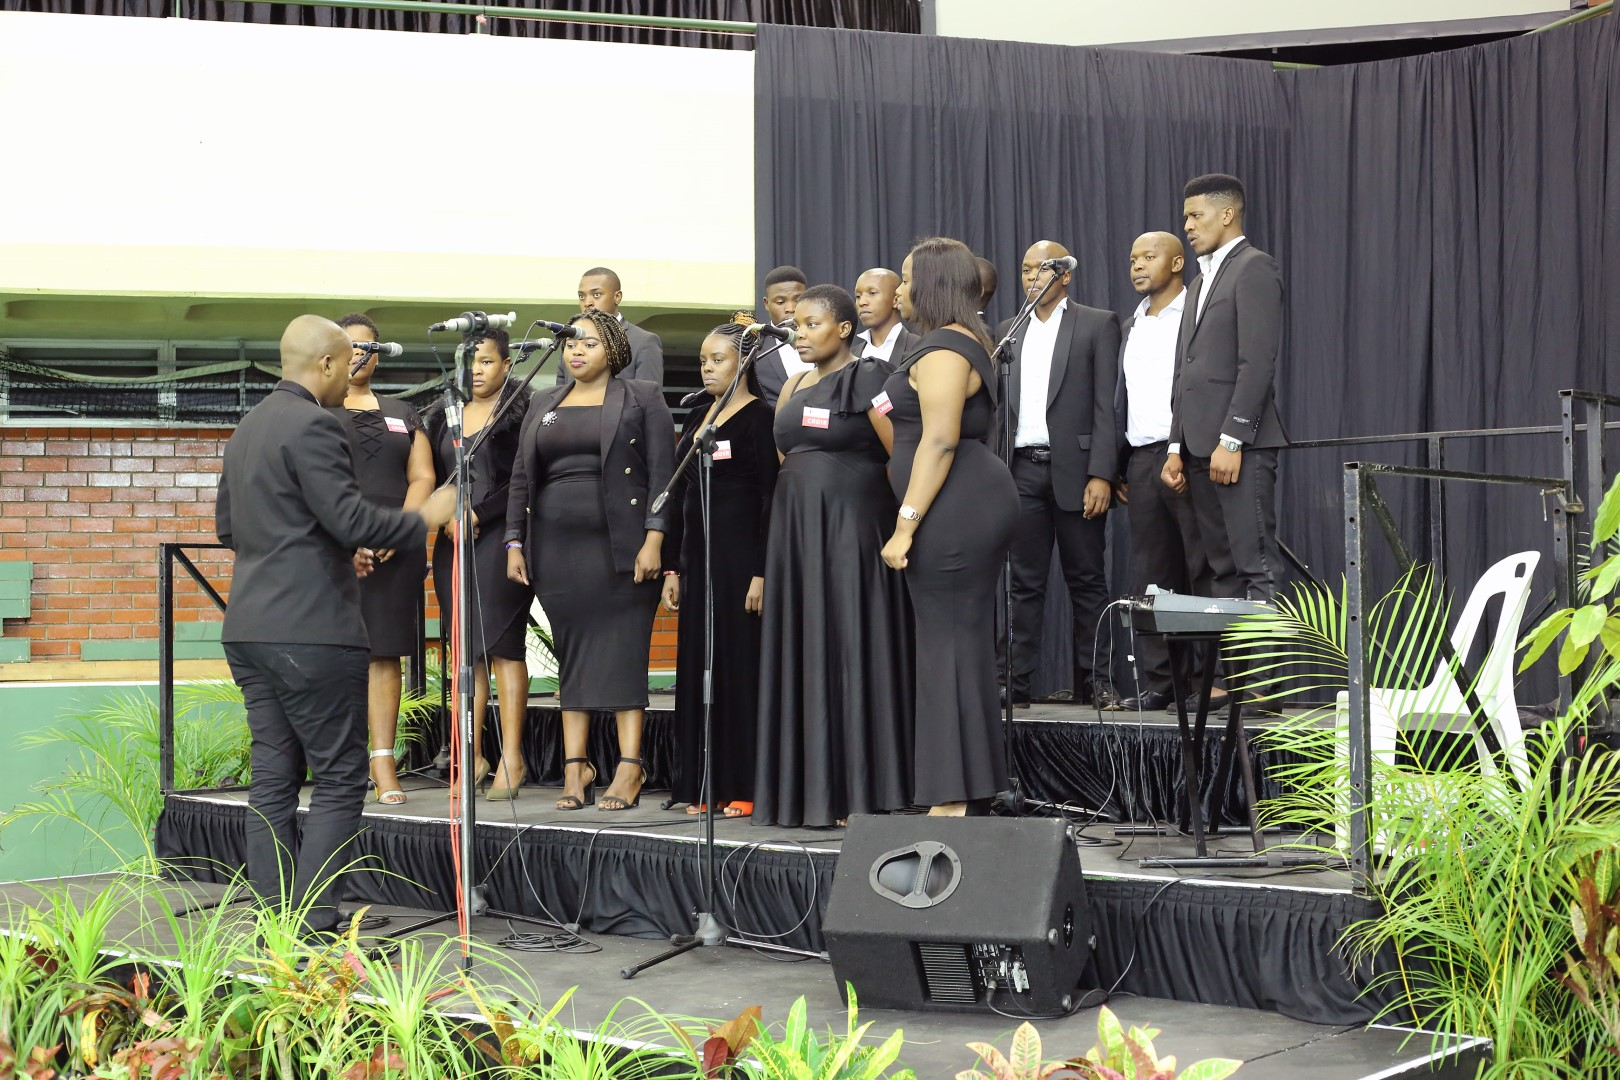 The UKZN Choir gets ready to sing